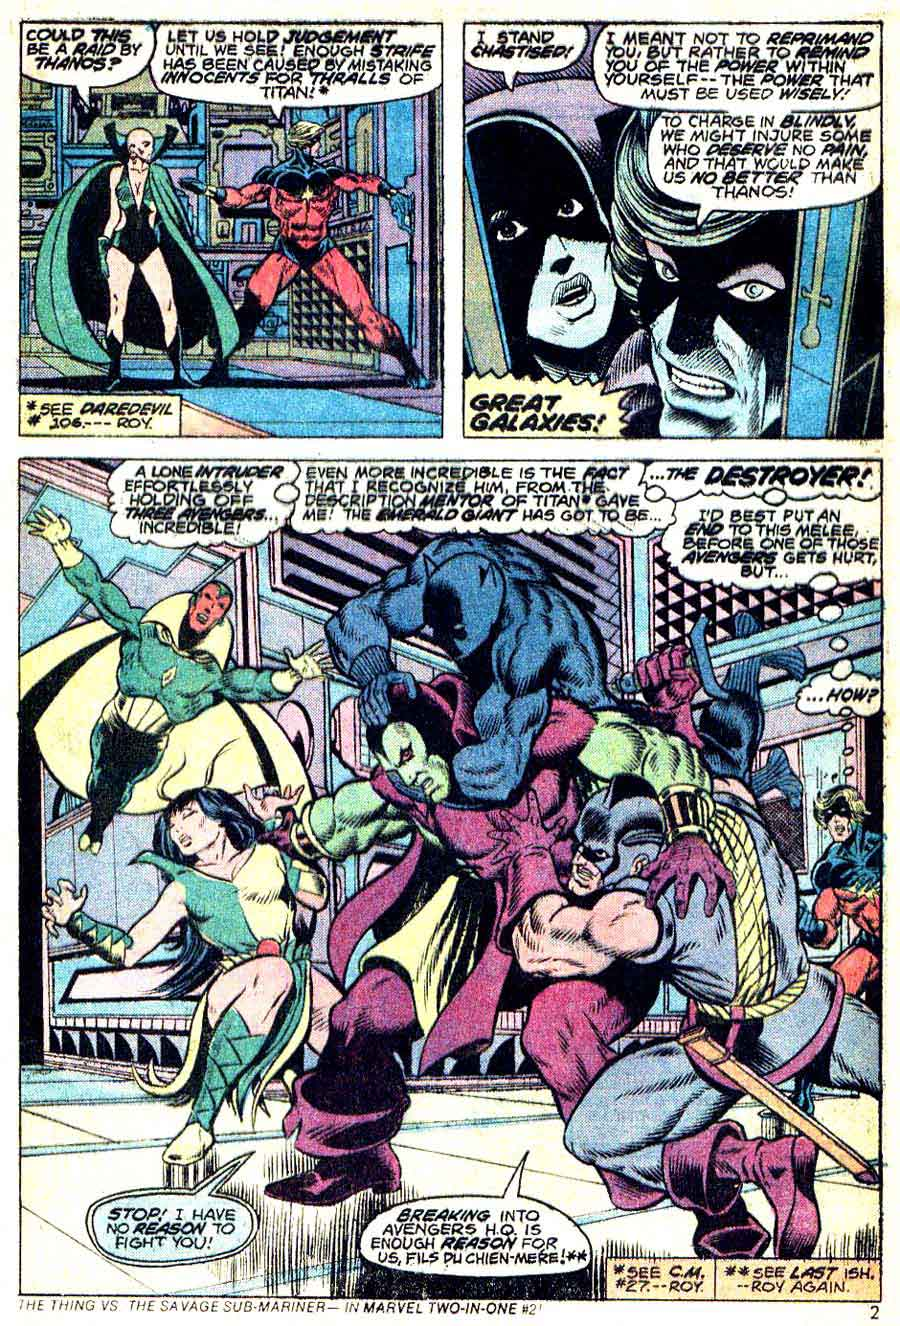 Captain Marvel #31 marvel 1970s bronze age comic book page art by Jim Starlin